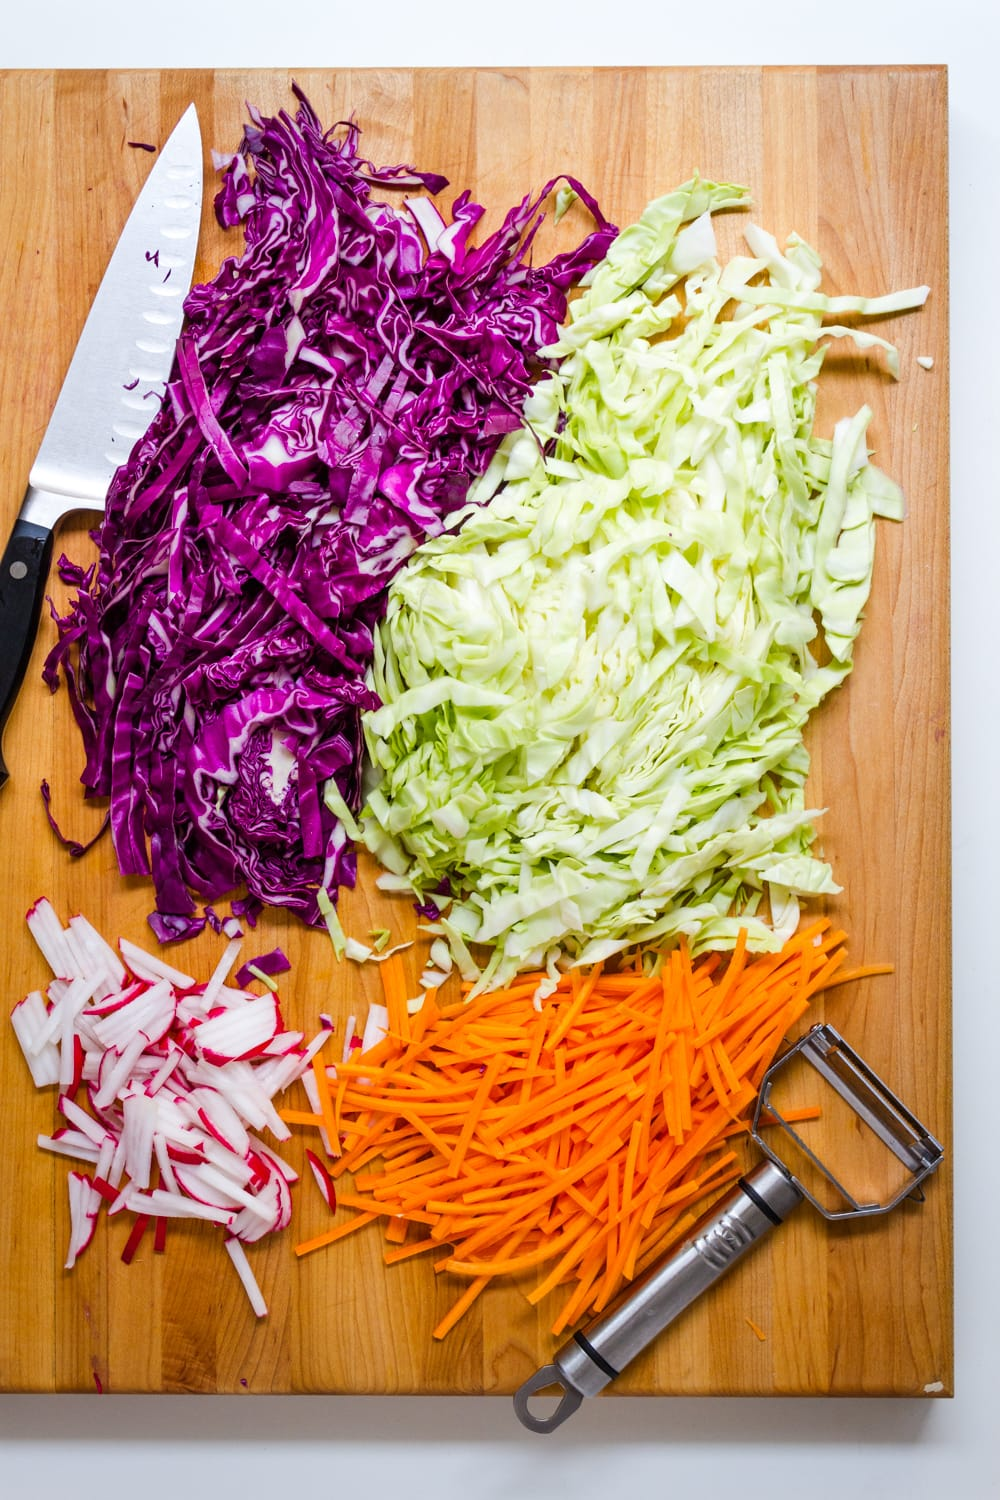 top down view of prepped ingredients for asian slaw salad on a wooden cutting board.